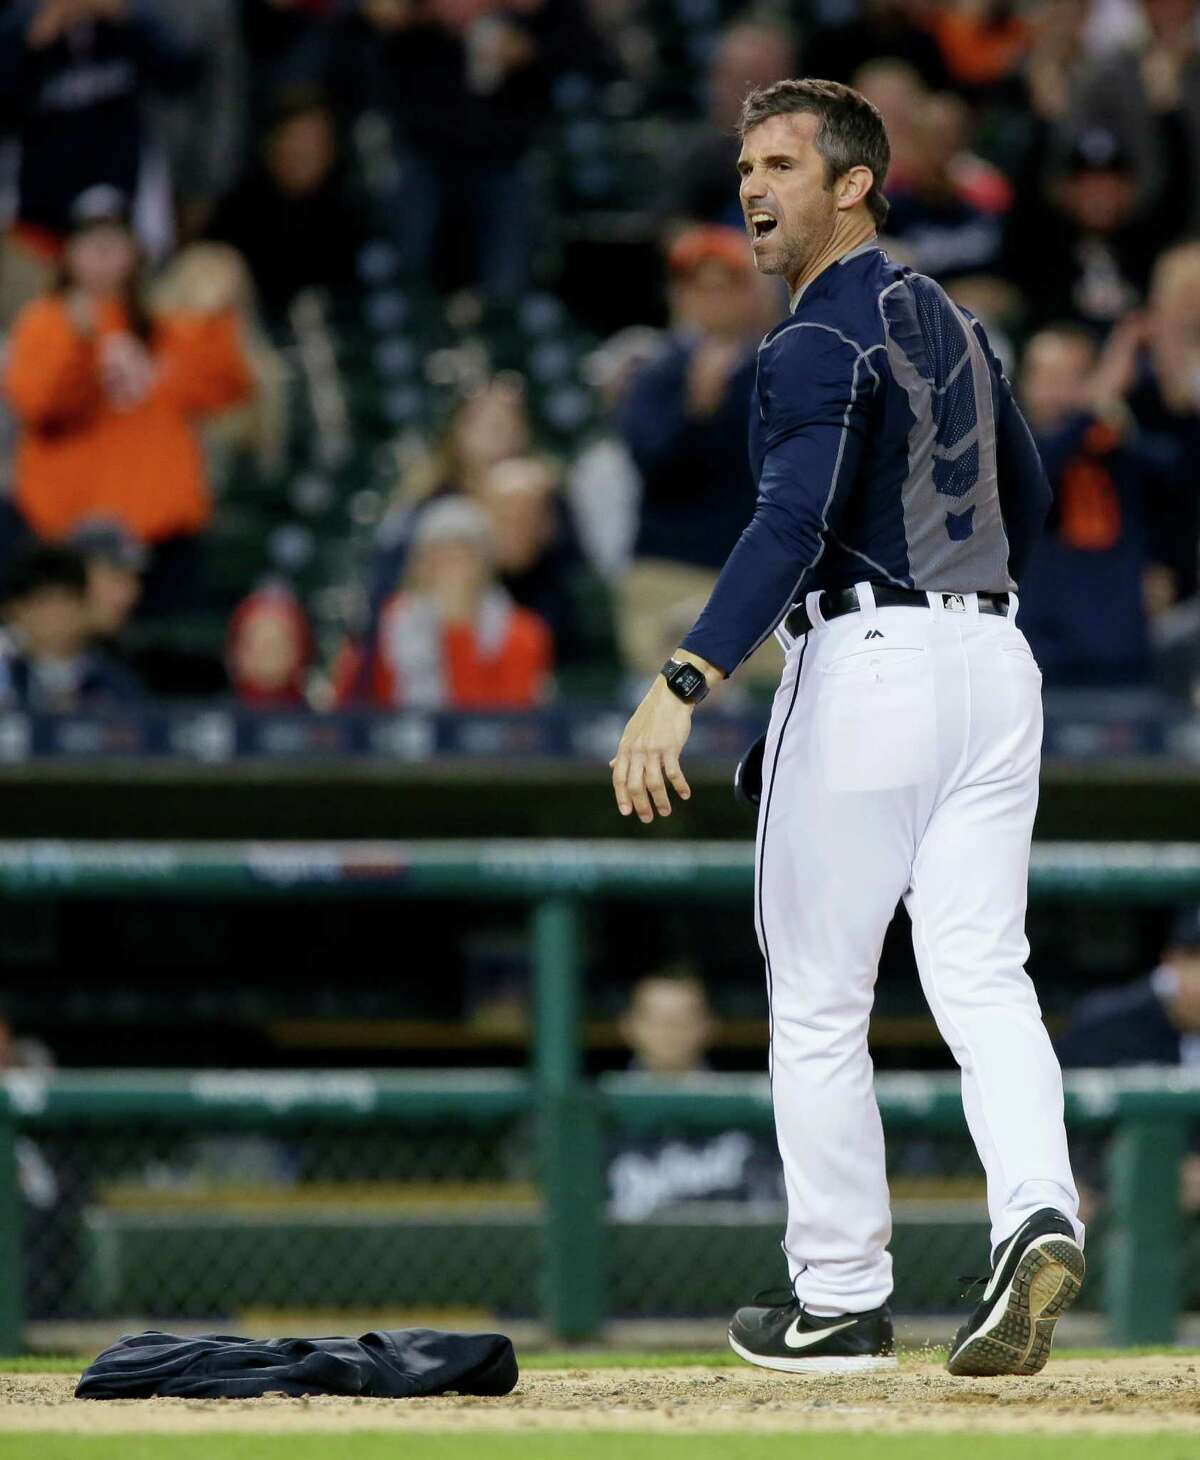 17. Detroit Tigers (21-22) Week 6 ranking: No. 19 Tigers manager Brad Ausmus might have quieted some calling for his job after the Tigers went 5-1 this past week.